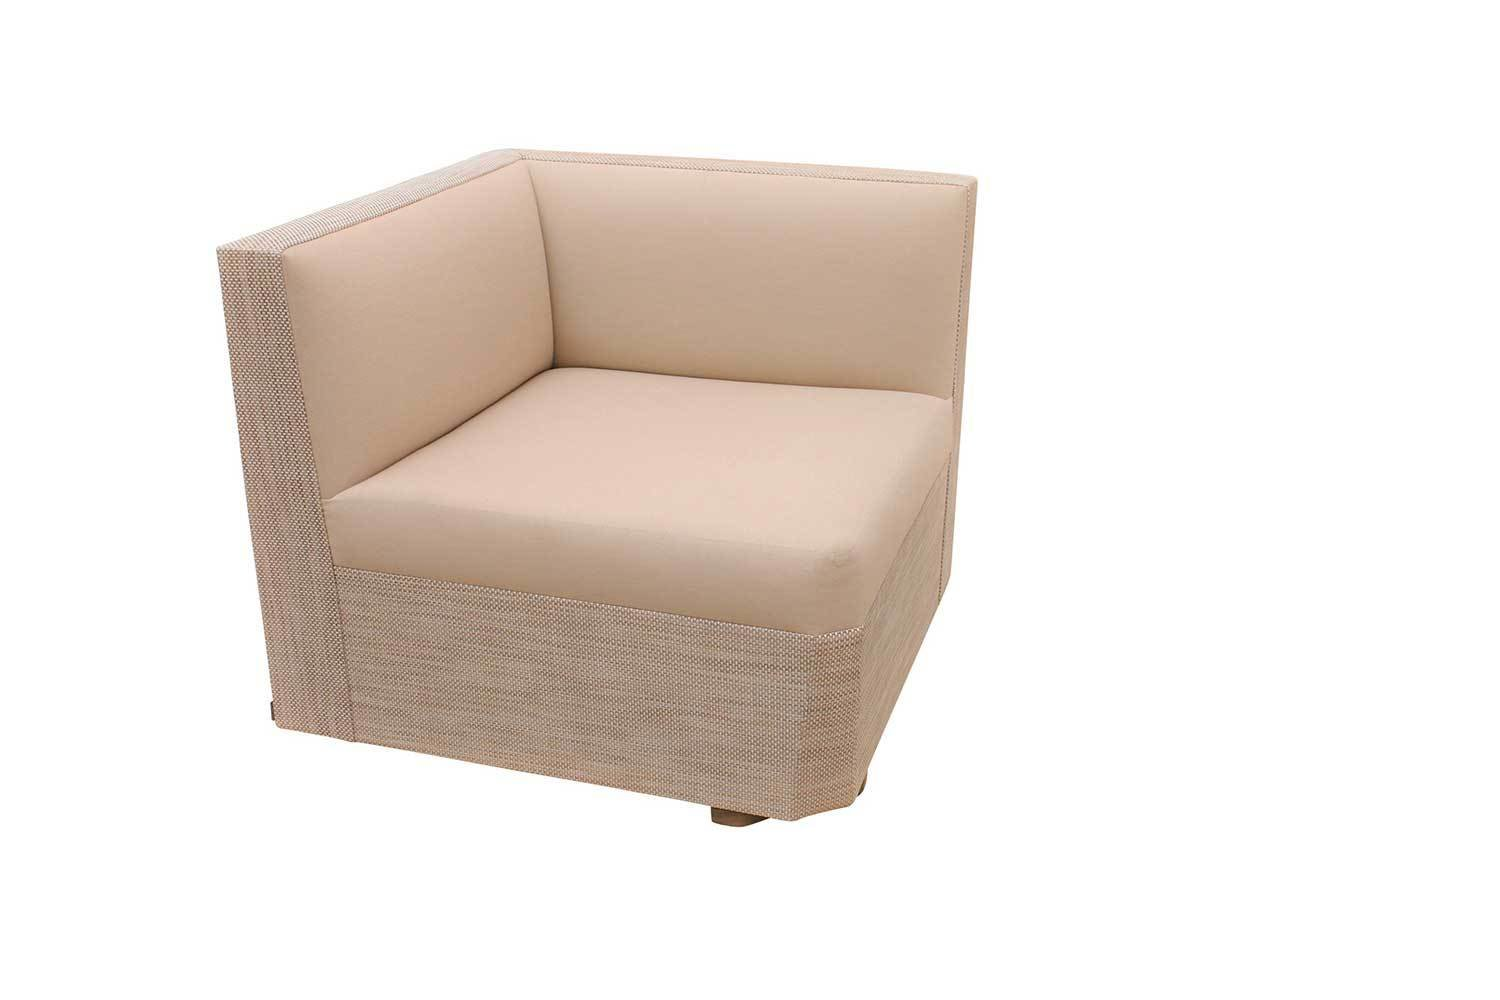 Oyster Corner Chair 1219